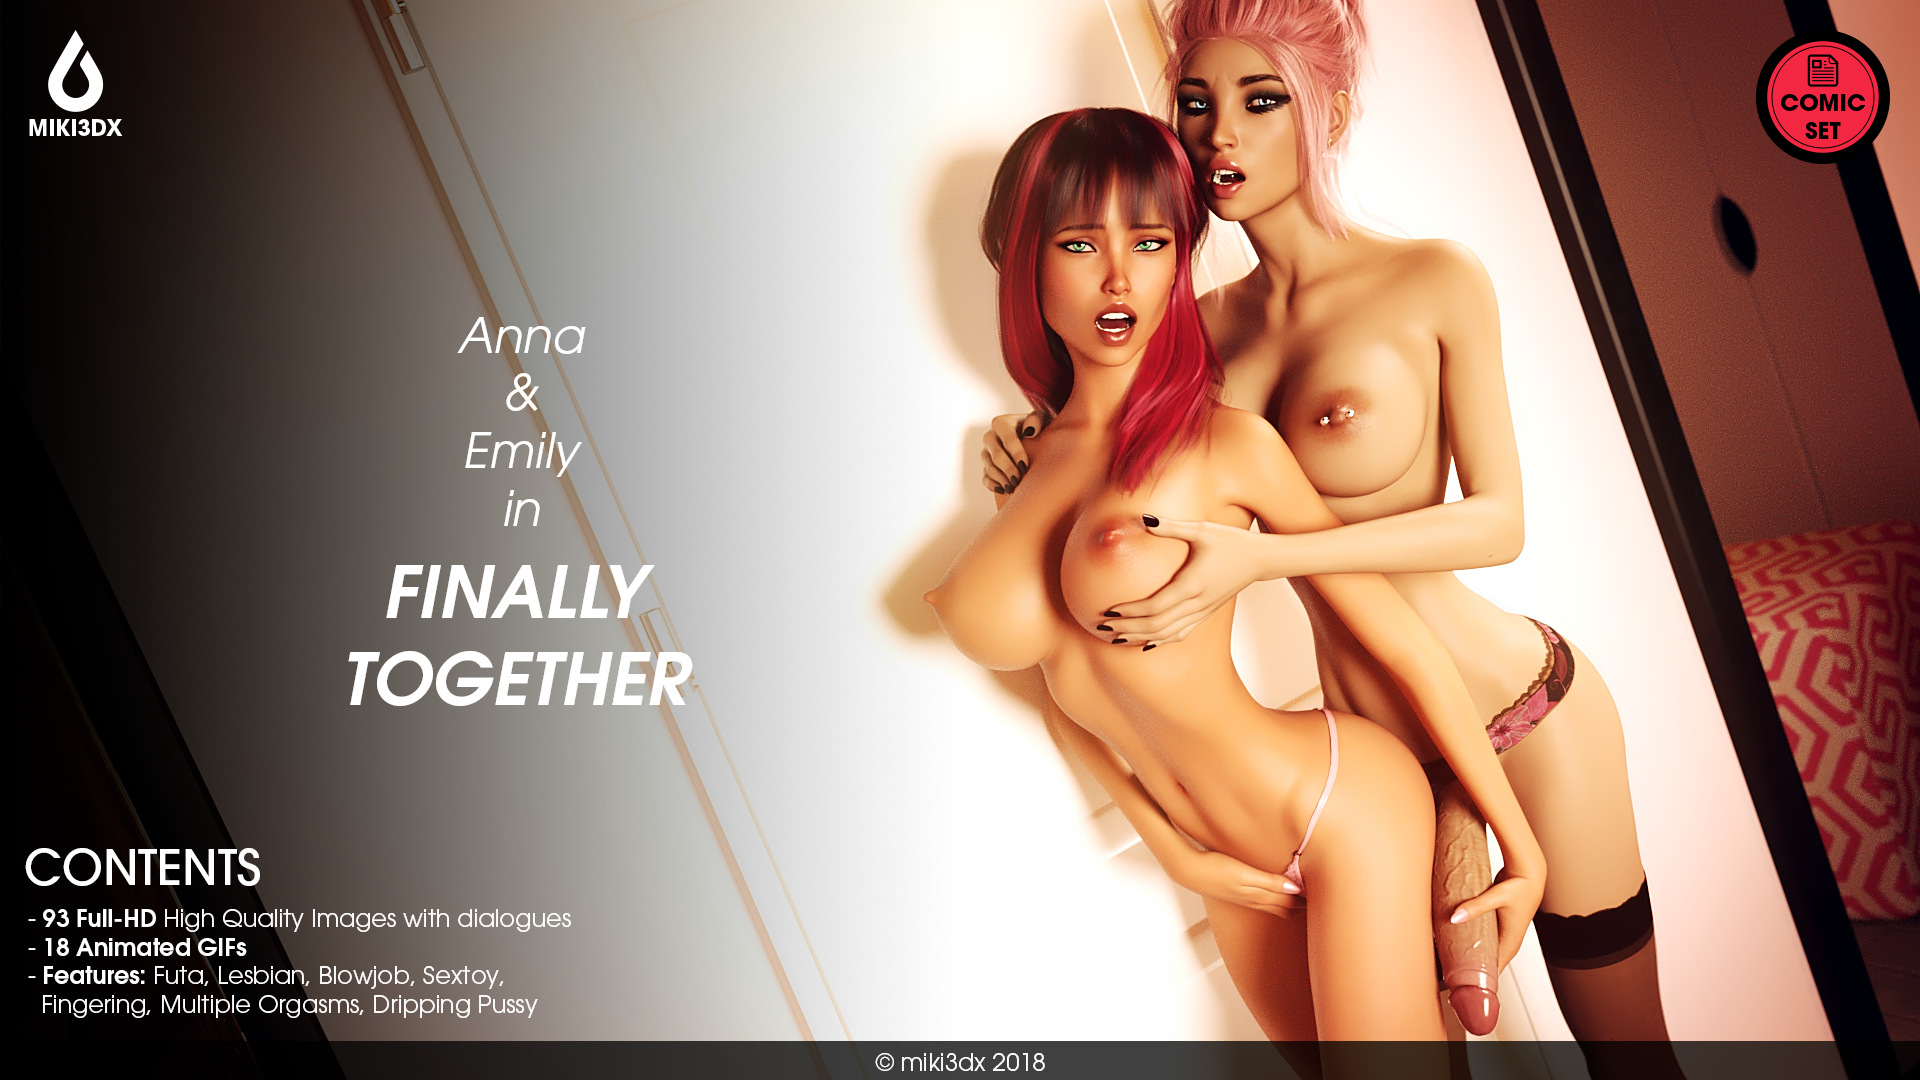 Miki3DX – Finally Together